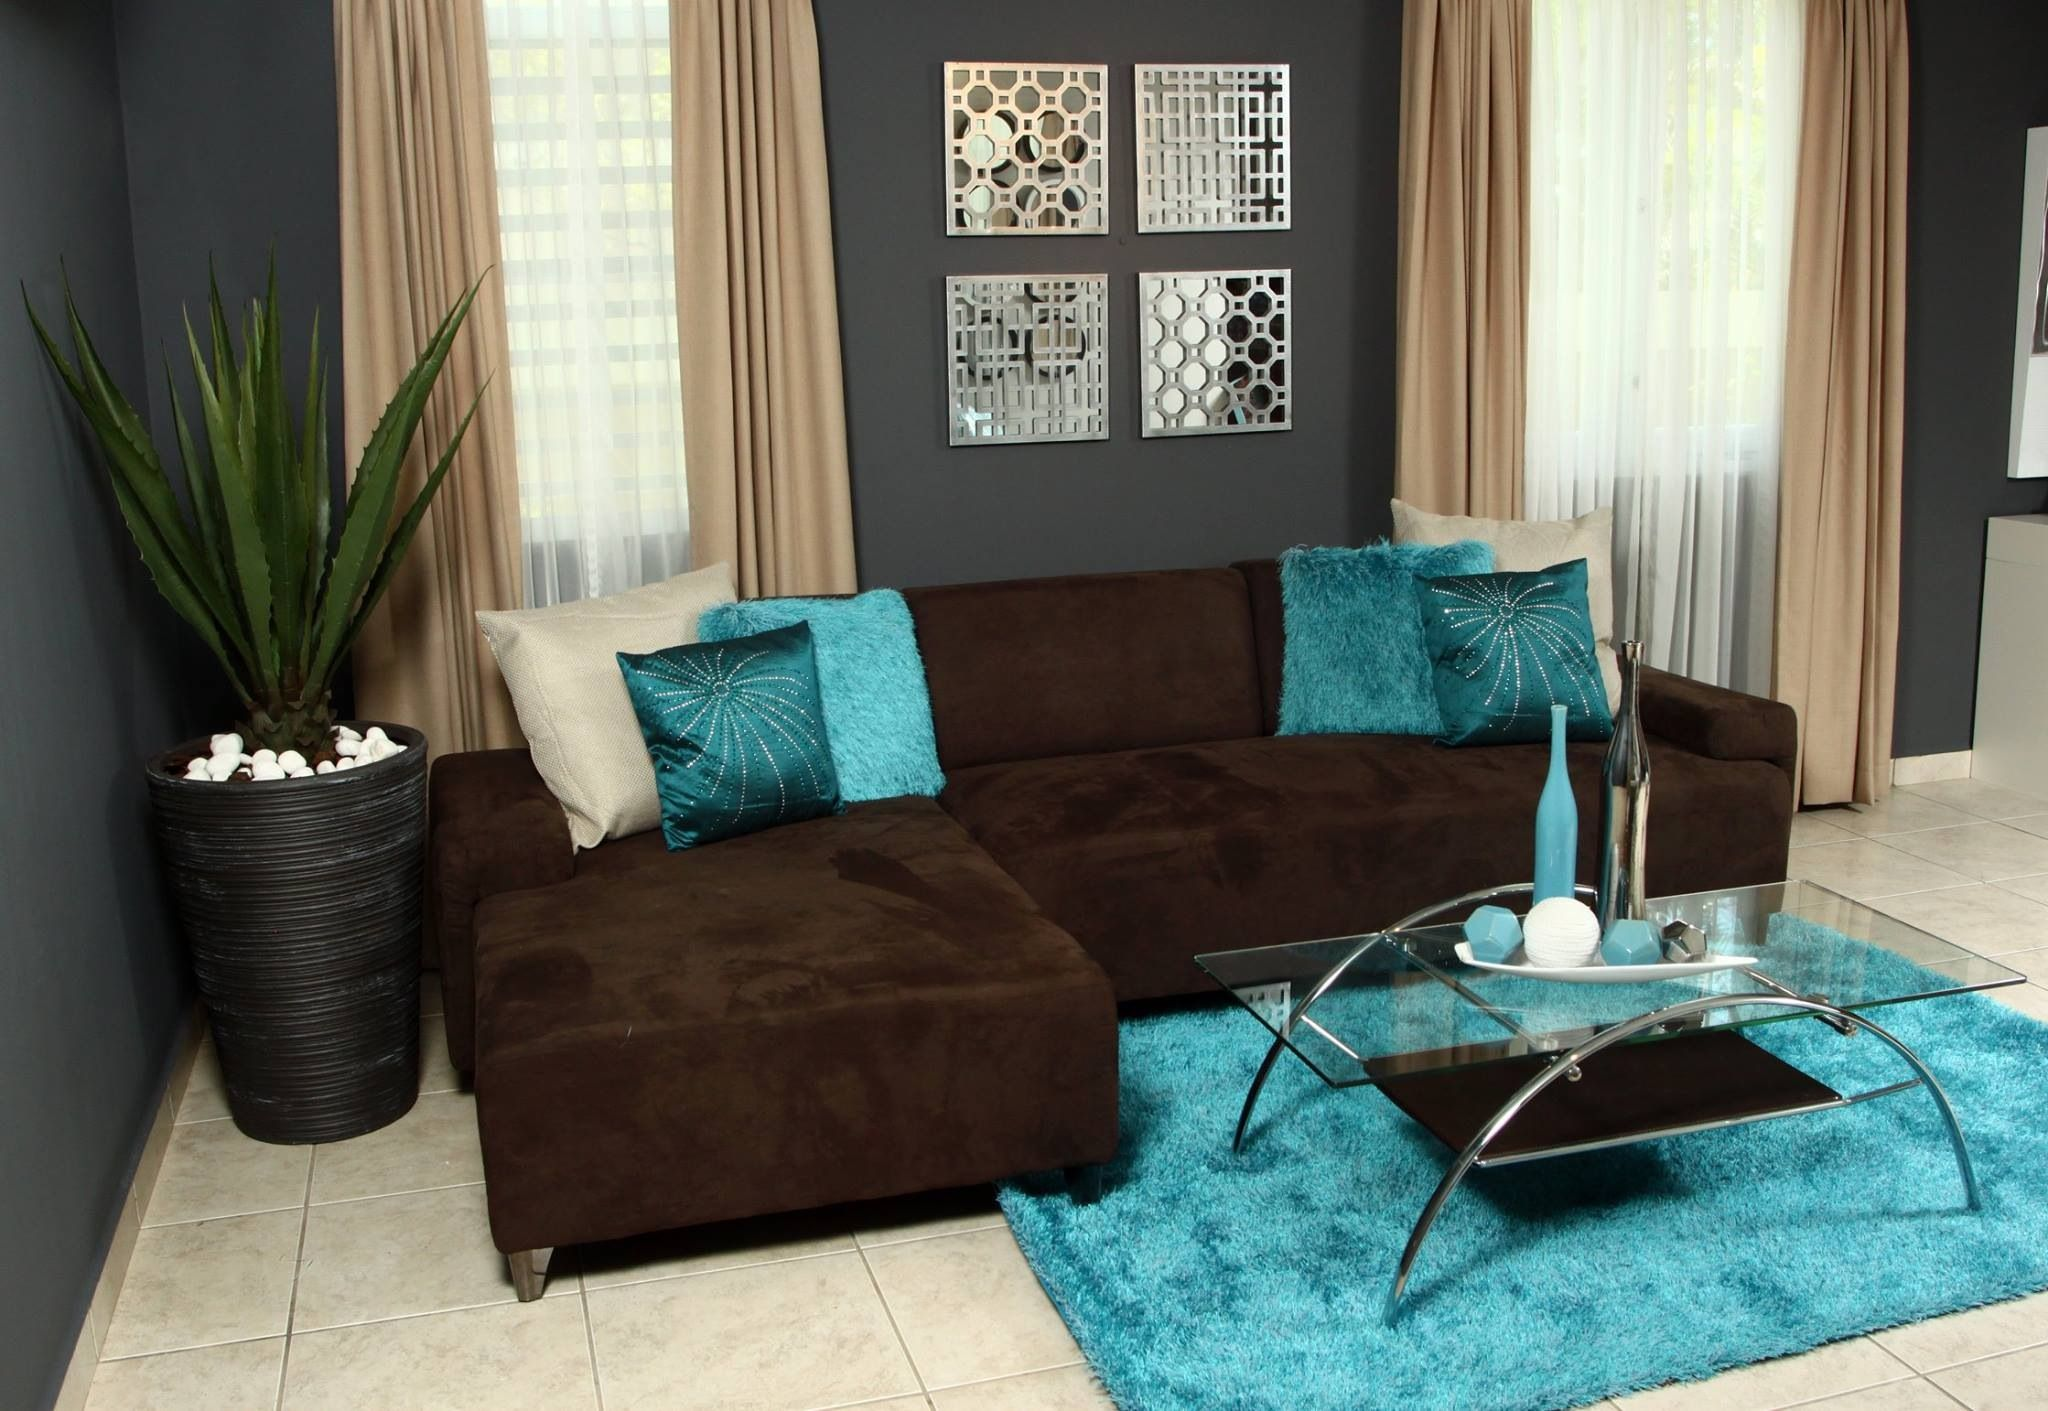 Color Chocolate y azul turquesa... Brutal!!!! | Decoracion de ...